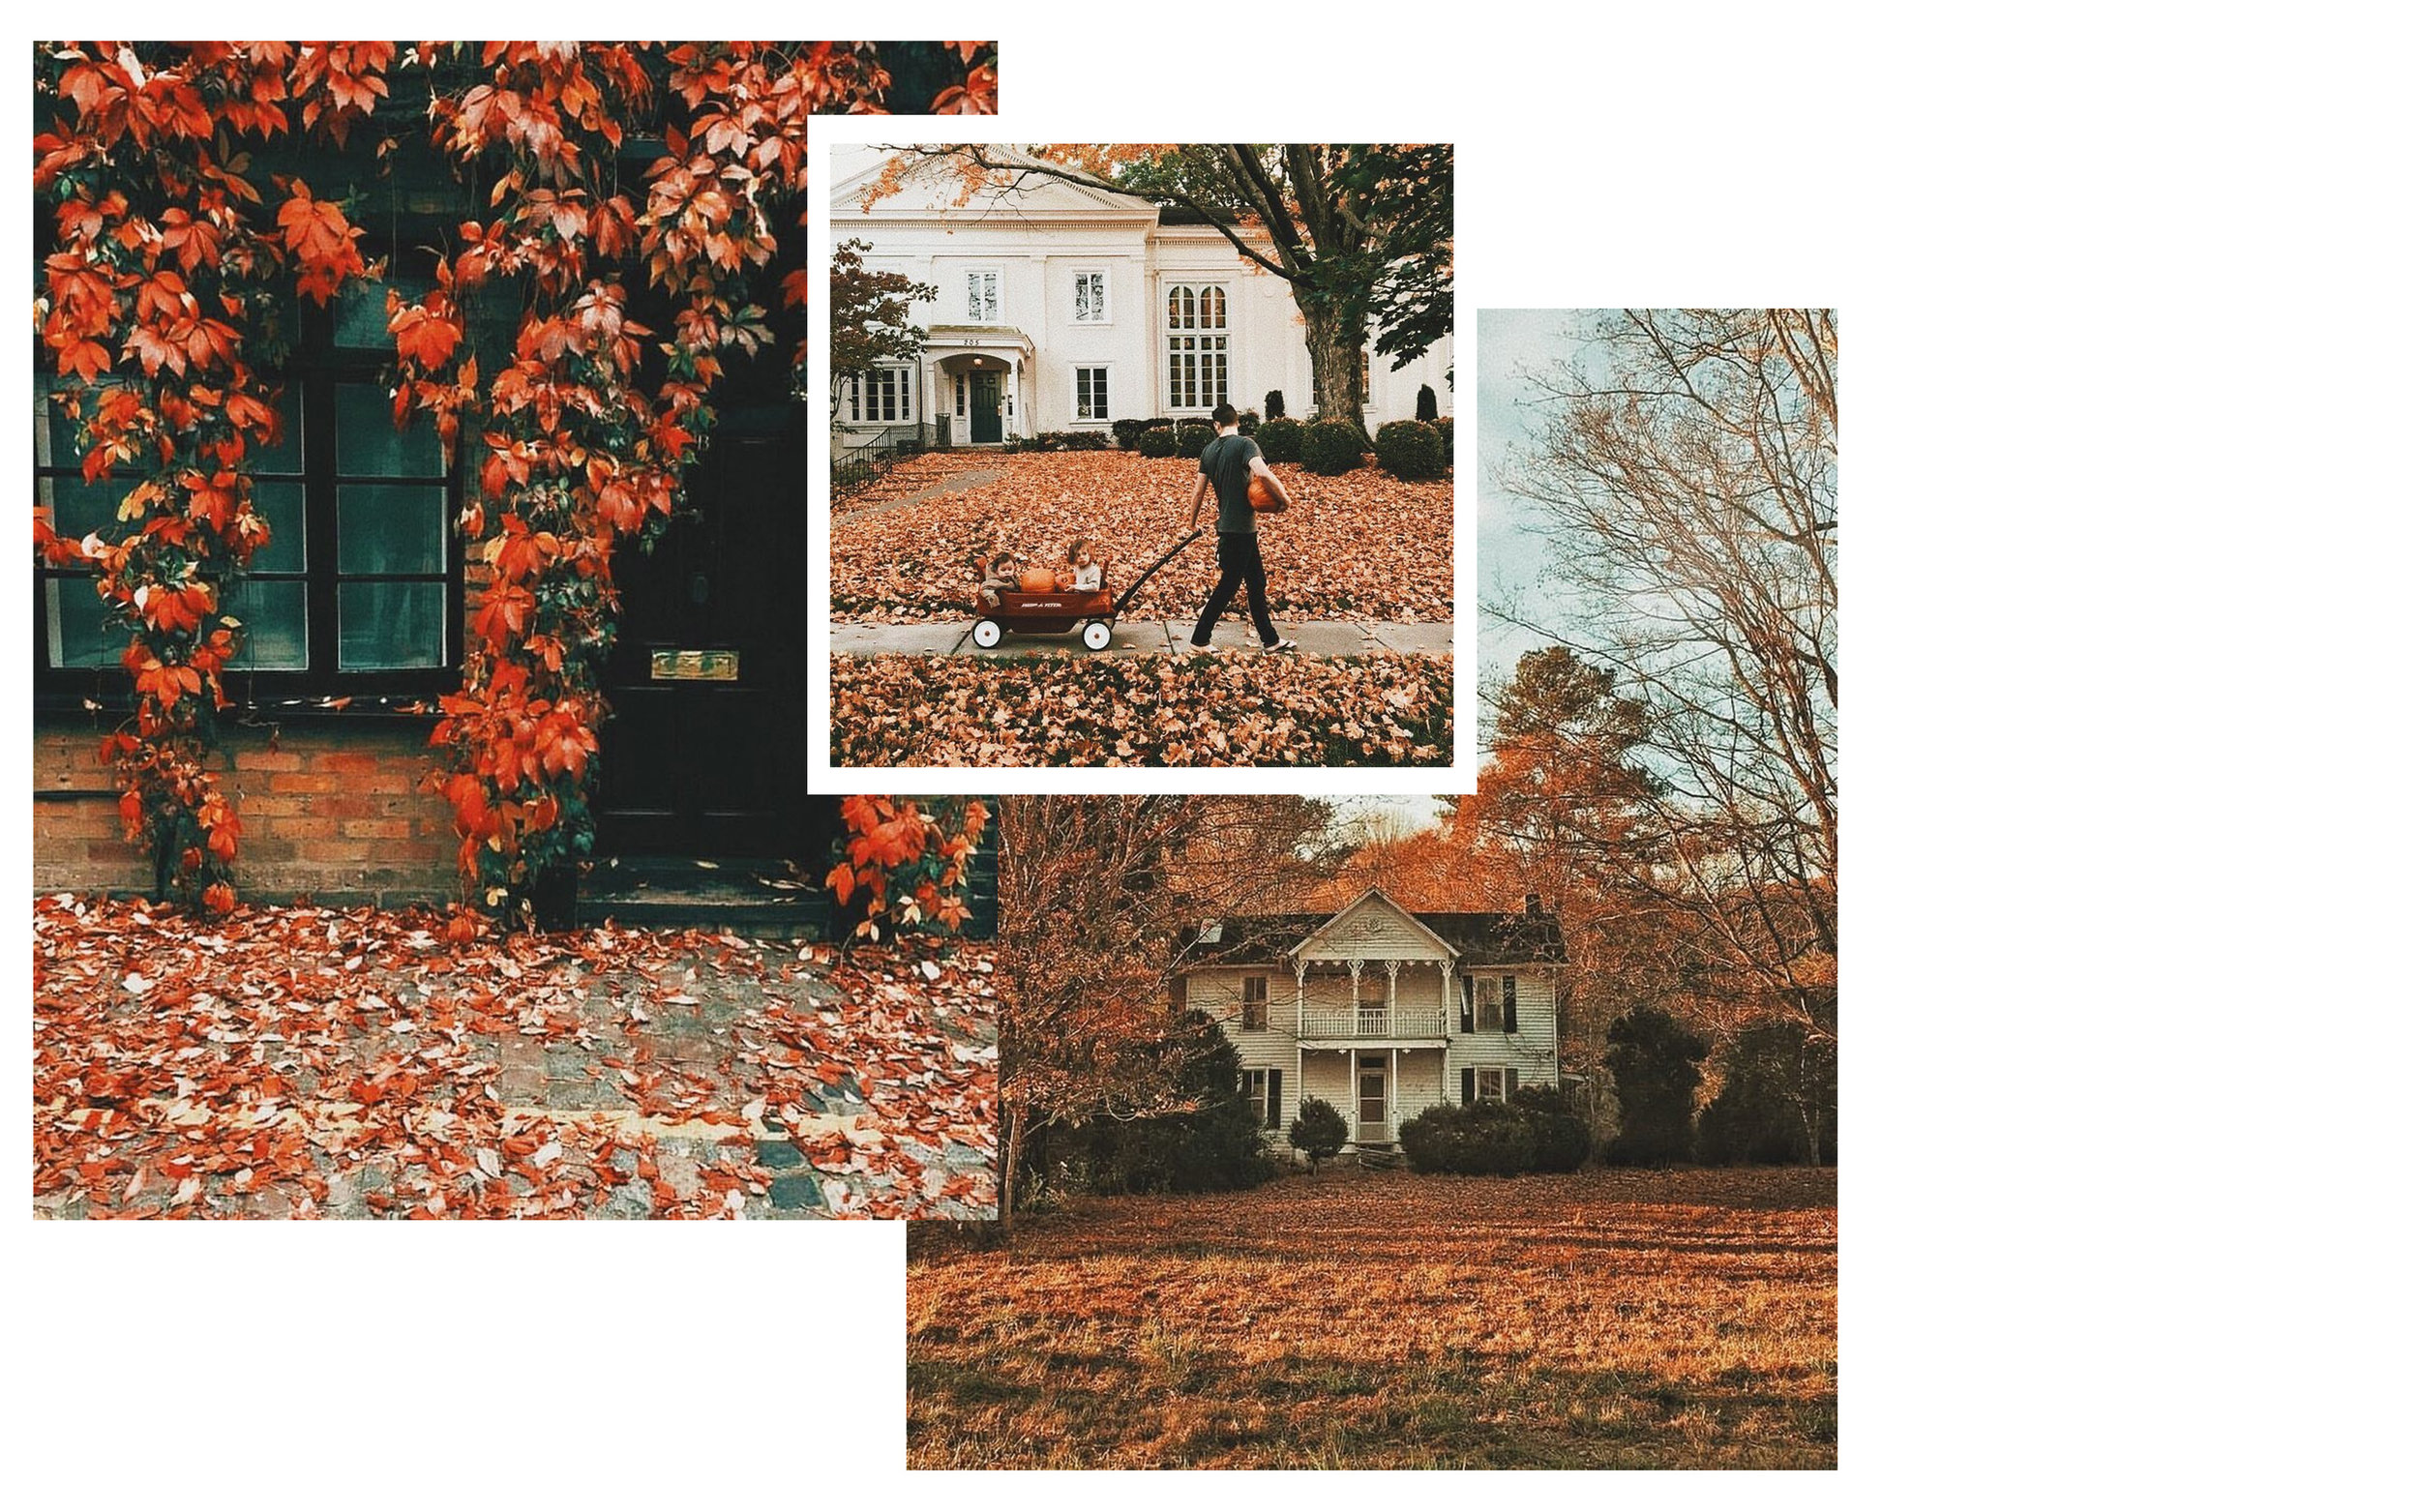 """4. we_heart_autumn - An entire account dedicated to giving you your daily dose of autumnal inspiration. Full of warm, orange images, this feed will help you transition into the cooler months with excitement rather than the usual complaints of """"oh it's so cold and dark."""" Follow here: we_heart_autumn"""